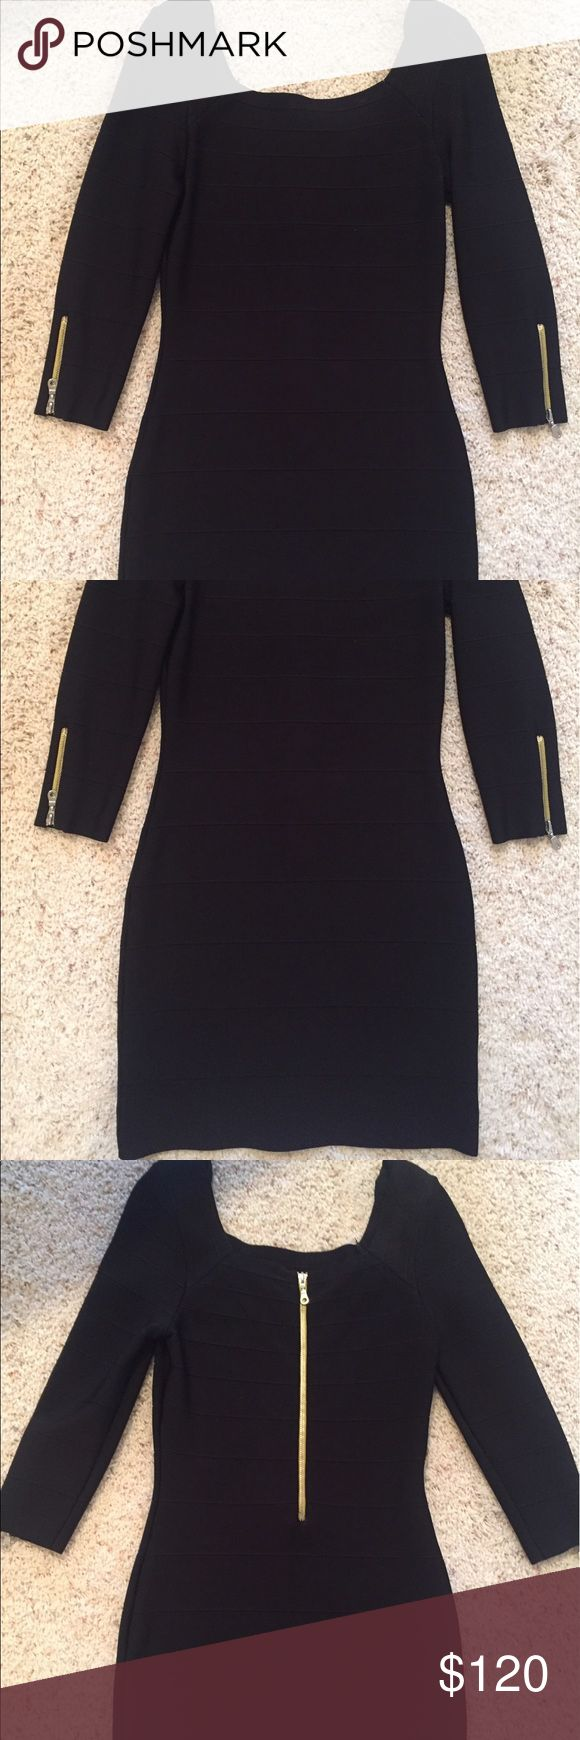 INC Black Bodycon Dress INC Bodycon dress.  Black. Size M.  Dress has modern accents including silver zippers on each arm and an exposed silver zipper down the back of the dress. Very modern. Dress is figure hugging and very flattering. Worn once. From Macy's. Worn once. From a pet free/smoke free home. 💜5 Star Rated Seller! 💜Same or Next Day Shipper (Excludes Weekends and Holidays)! INC International Concepts Dresses Midi